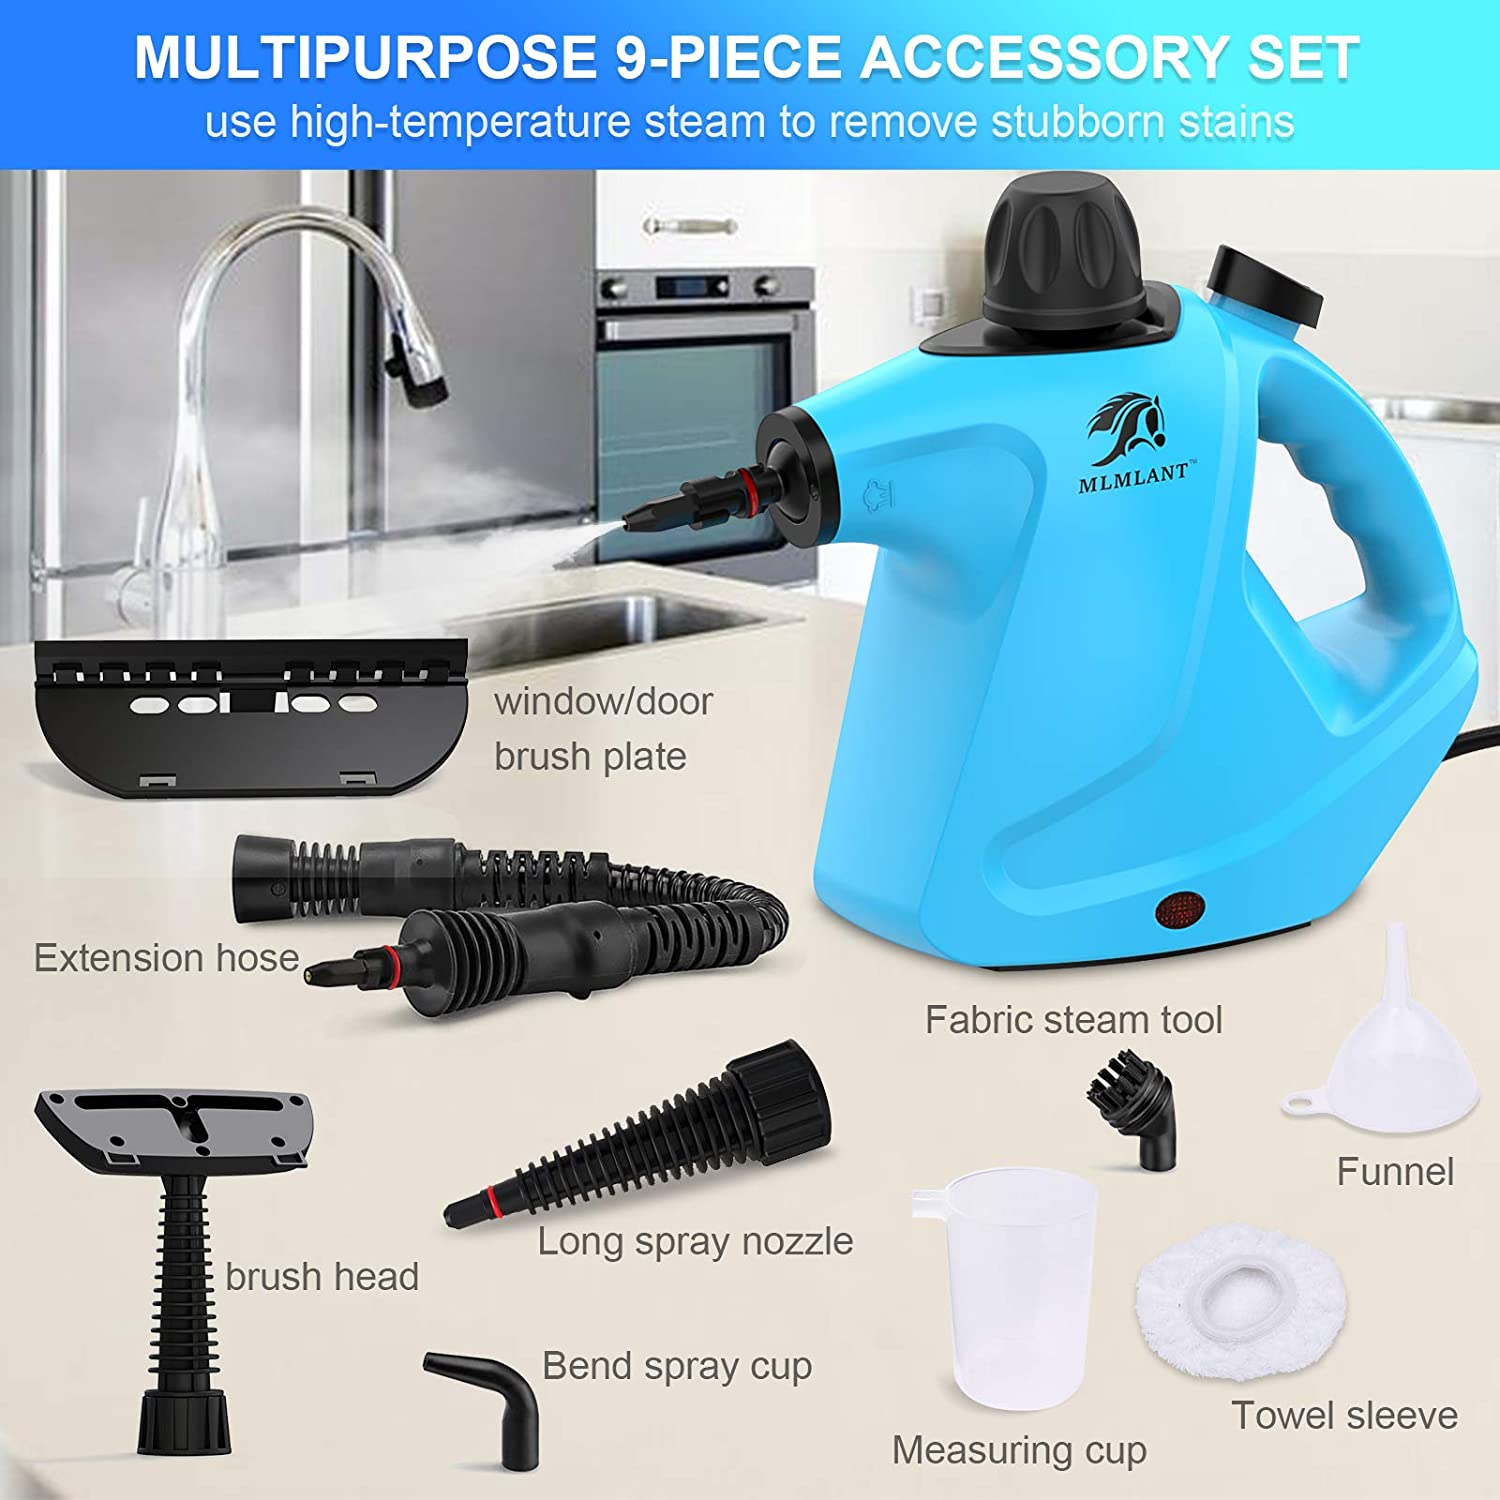 MLMLANT Steam Cleaners,Handheld Steamers Cleaning, Multi Purpose Portable Grout,450milliliter Tank Capacity, for Upholstery Sofa Curtain Shower Carpet Window Car Tile Kitchen Patio Home Use Machine